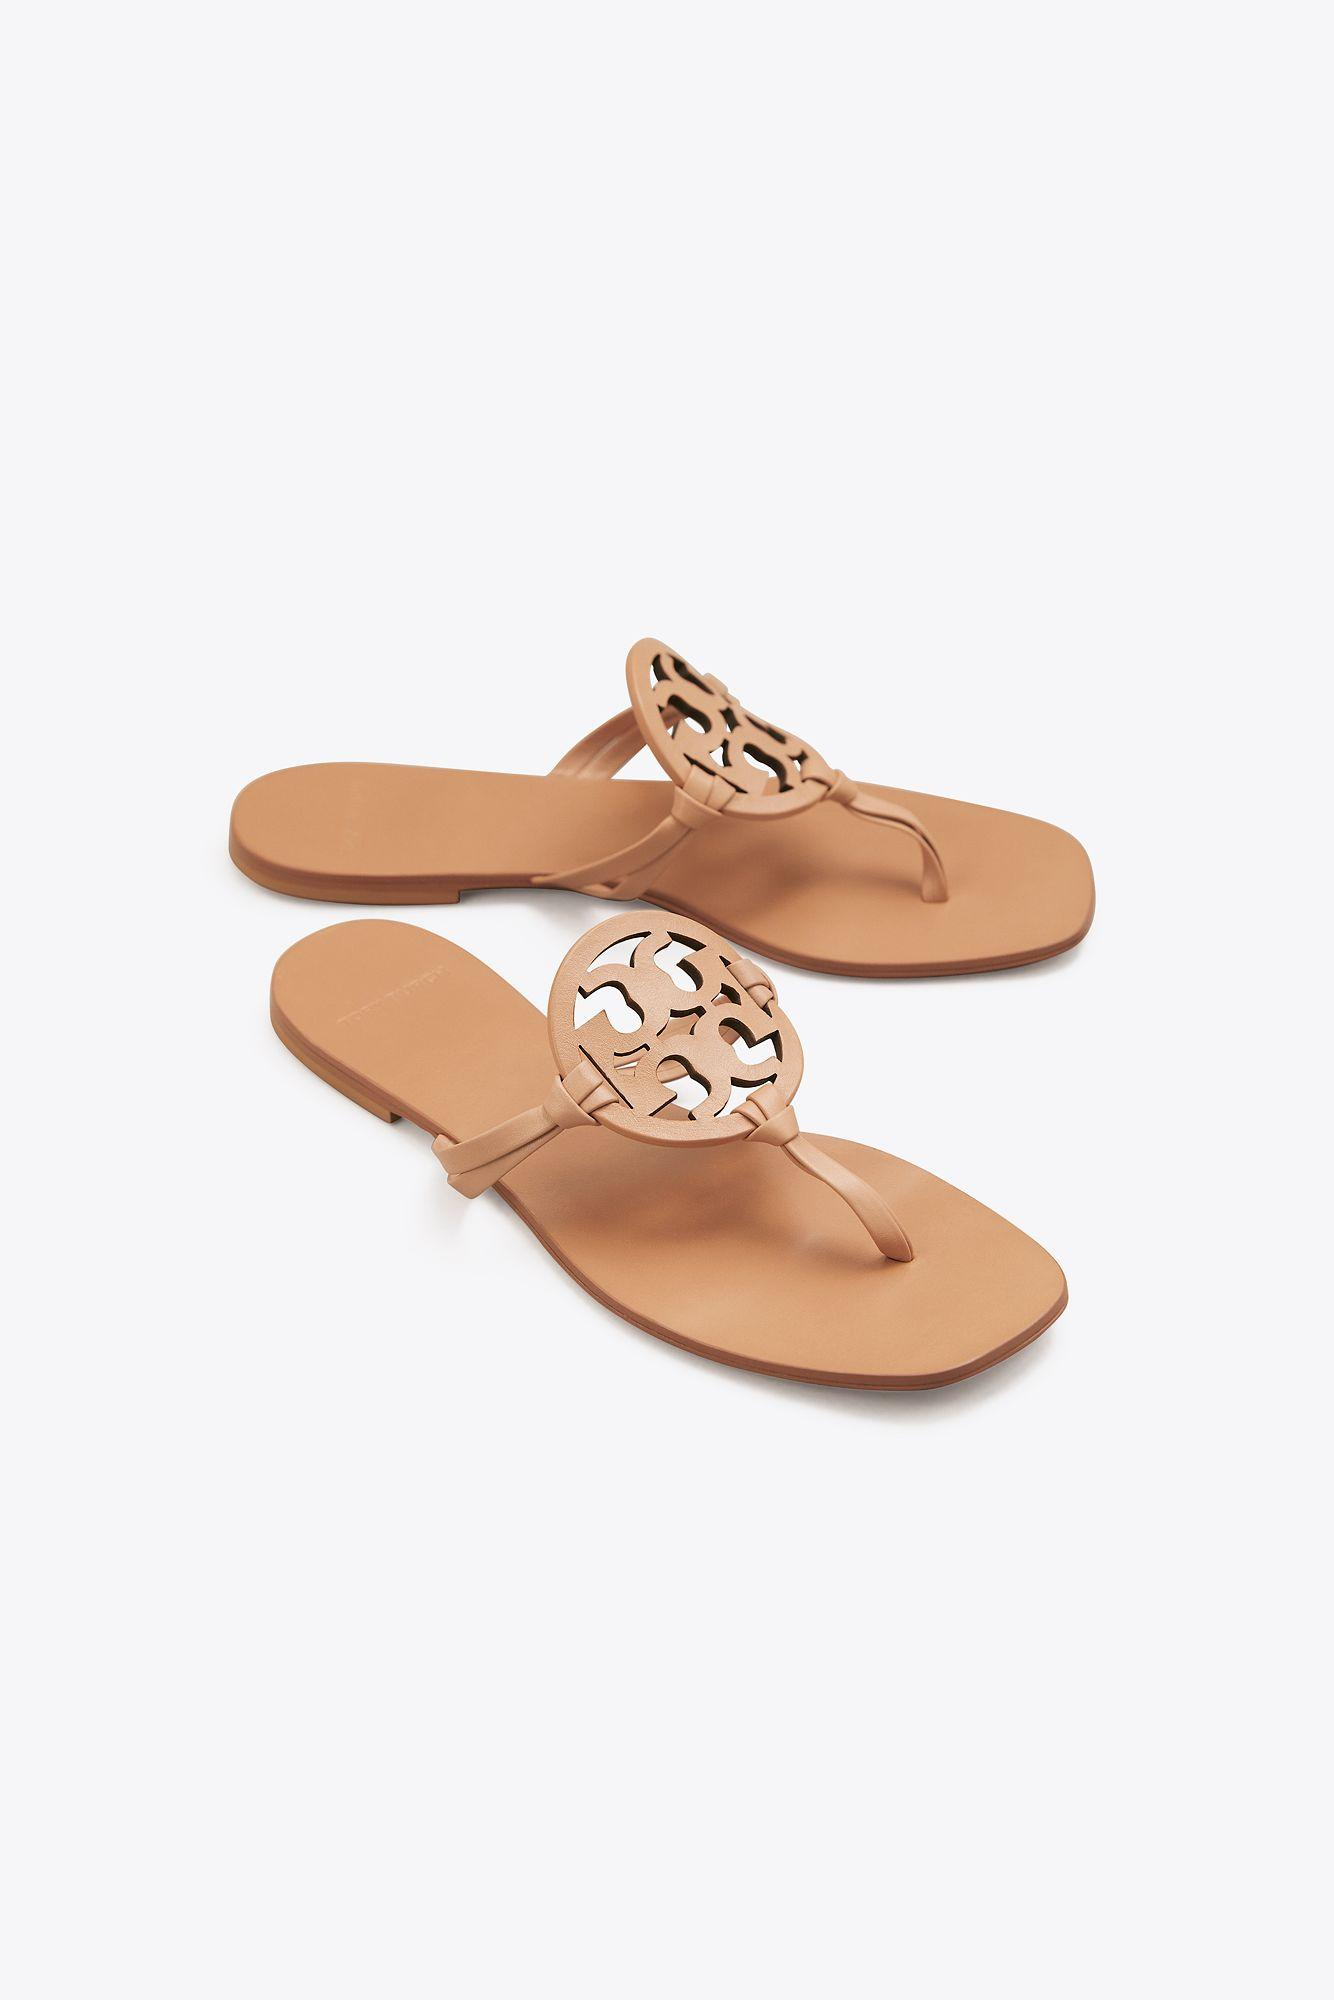 f13f6378d39 Tory Burch - Multicolor Miller Square-toe Sandal